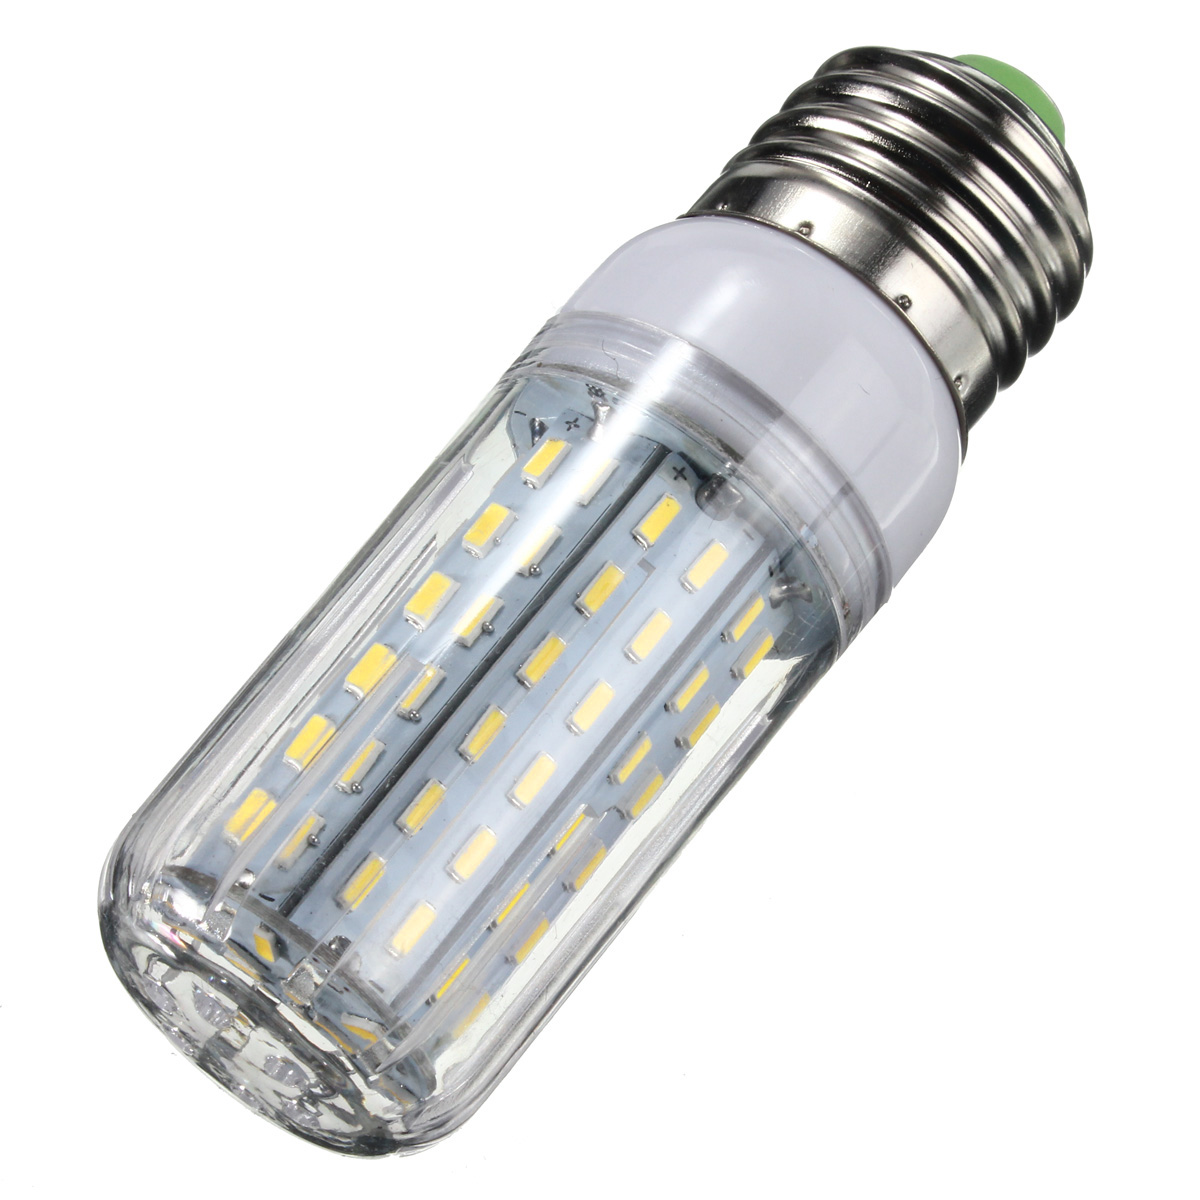 e27 e14 e12 b22 g9 gu10 10w 96 smd 4014 900lm led fireproof cover corn lighting bulb ac 220v. Black Bedroom Furniture Sets. Home Design Ideas